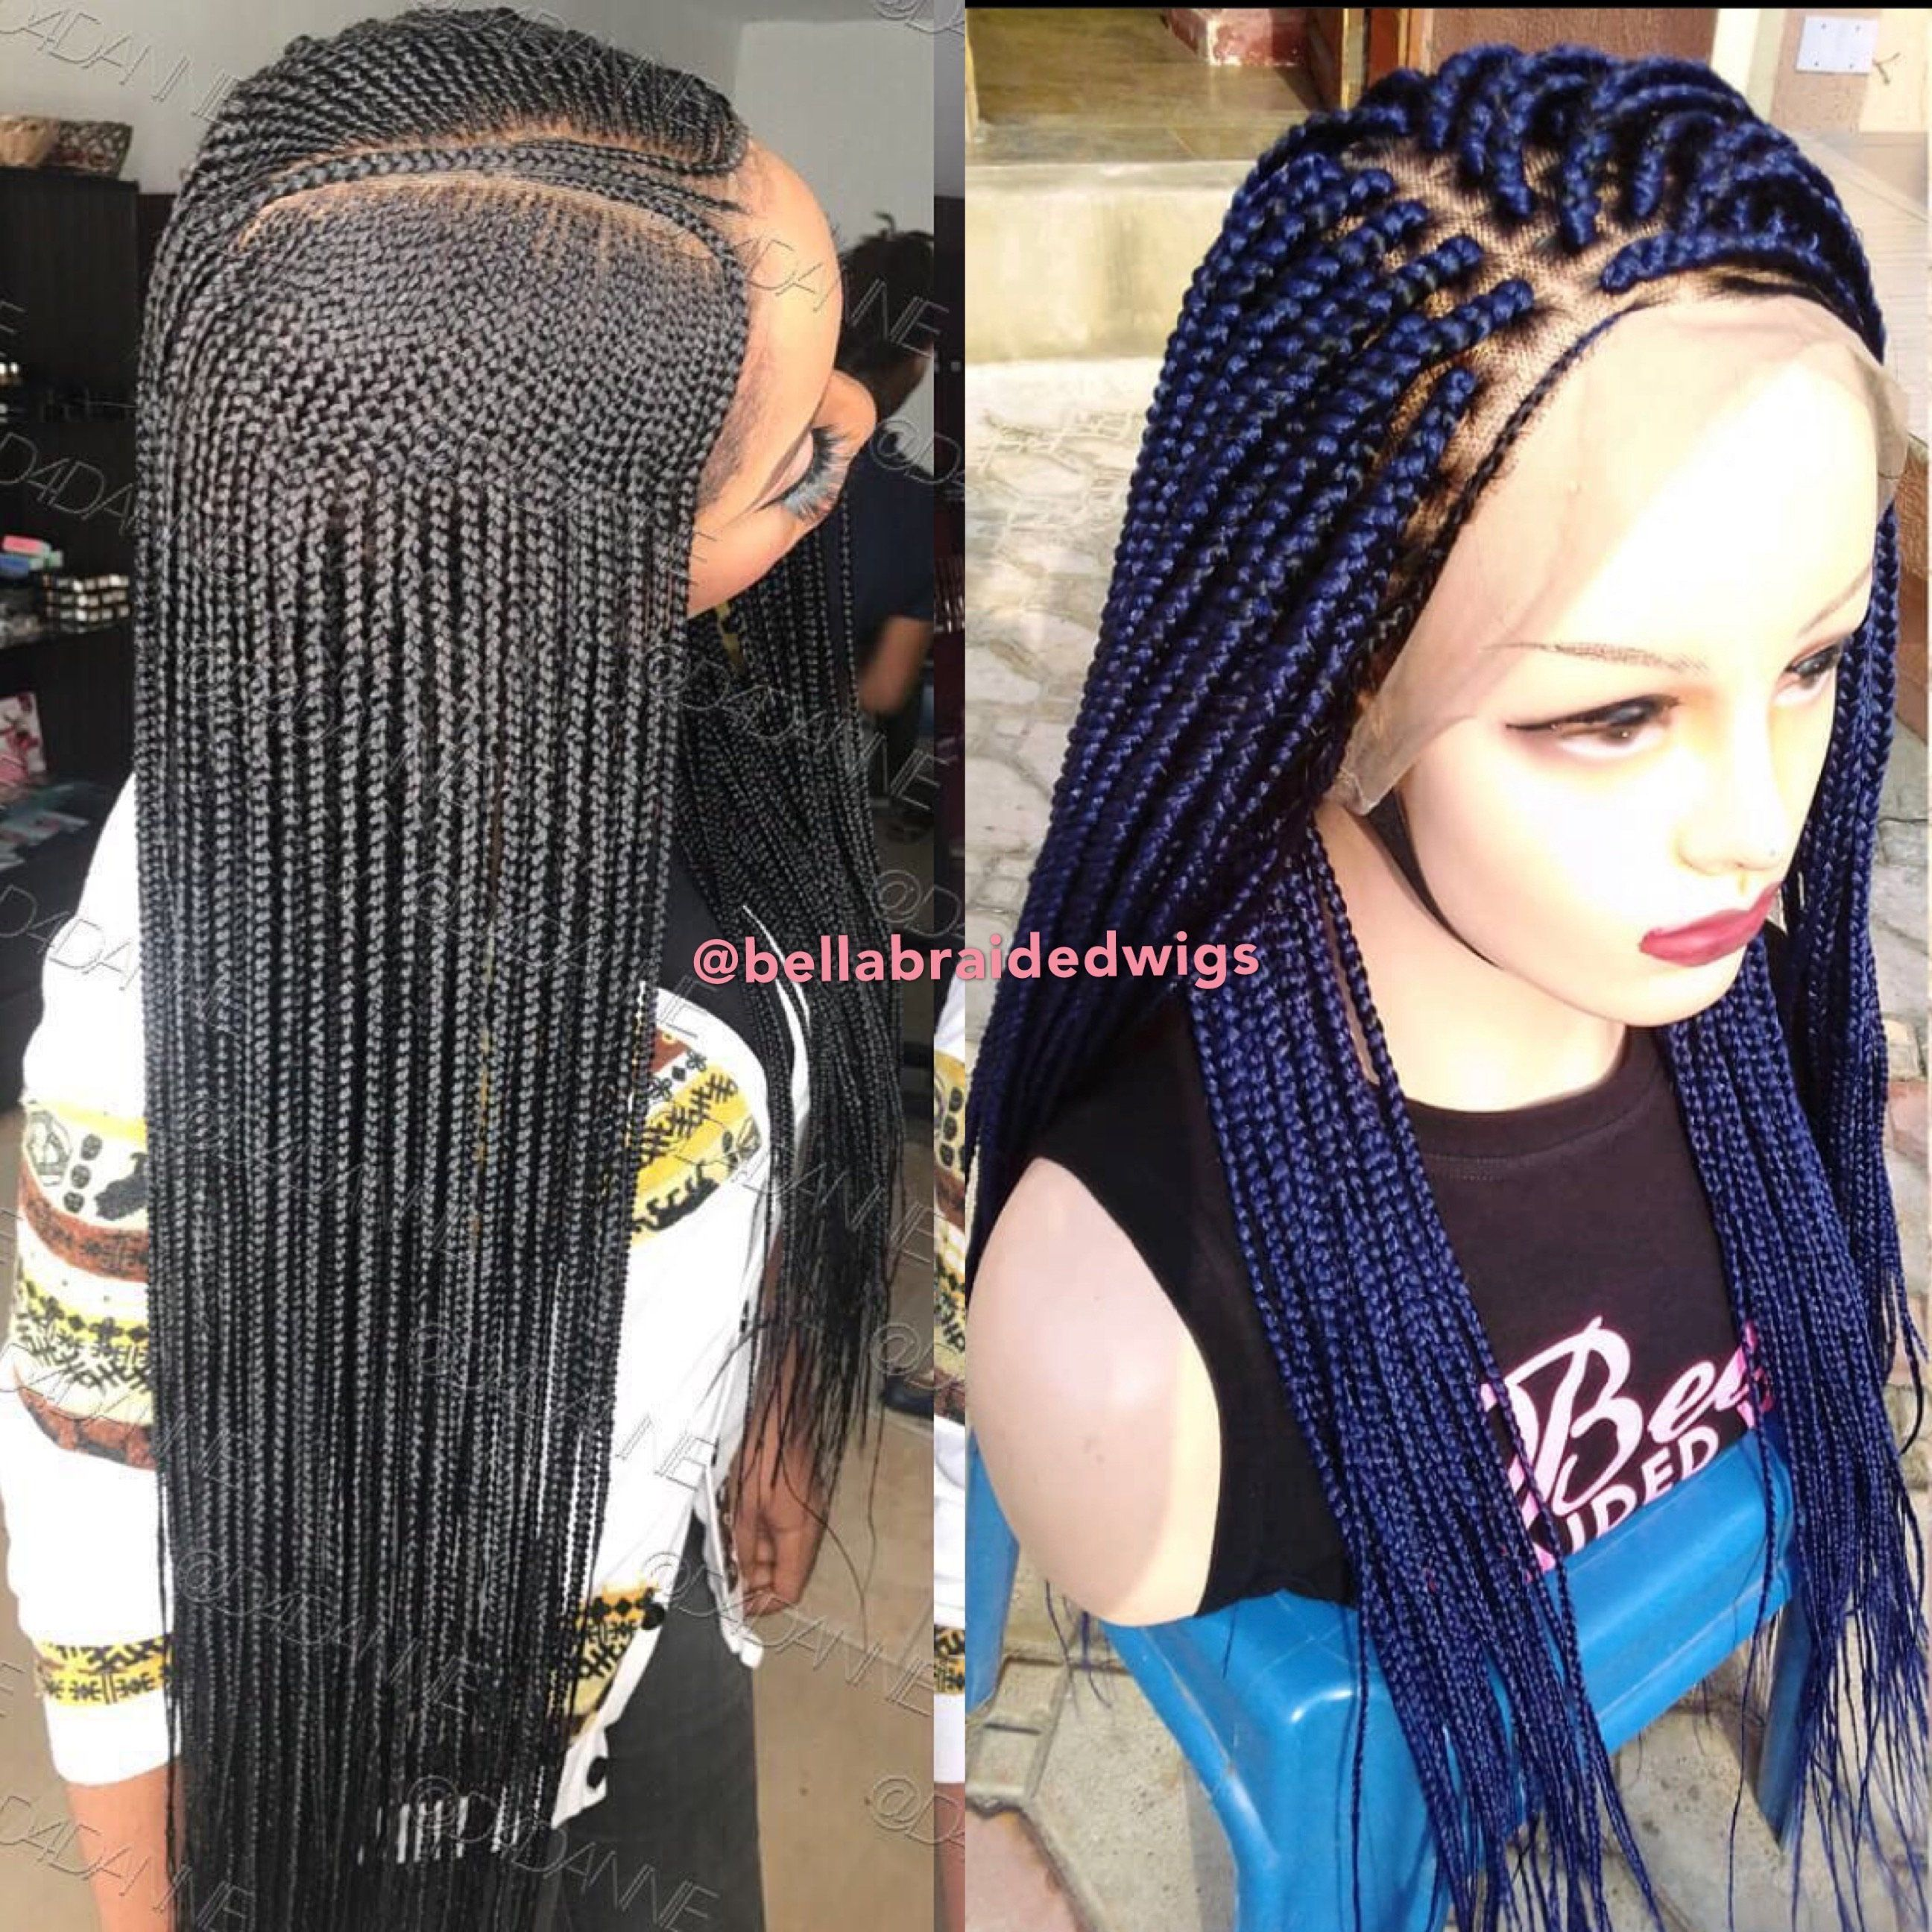 Bella Braided Wigs - BUY AMINA GET Deep Blue Belle FREE